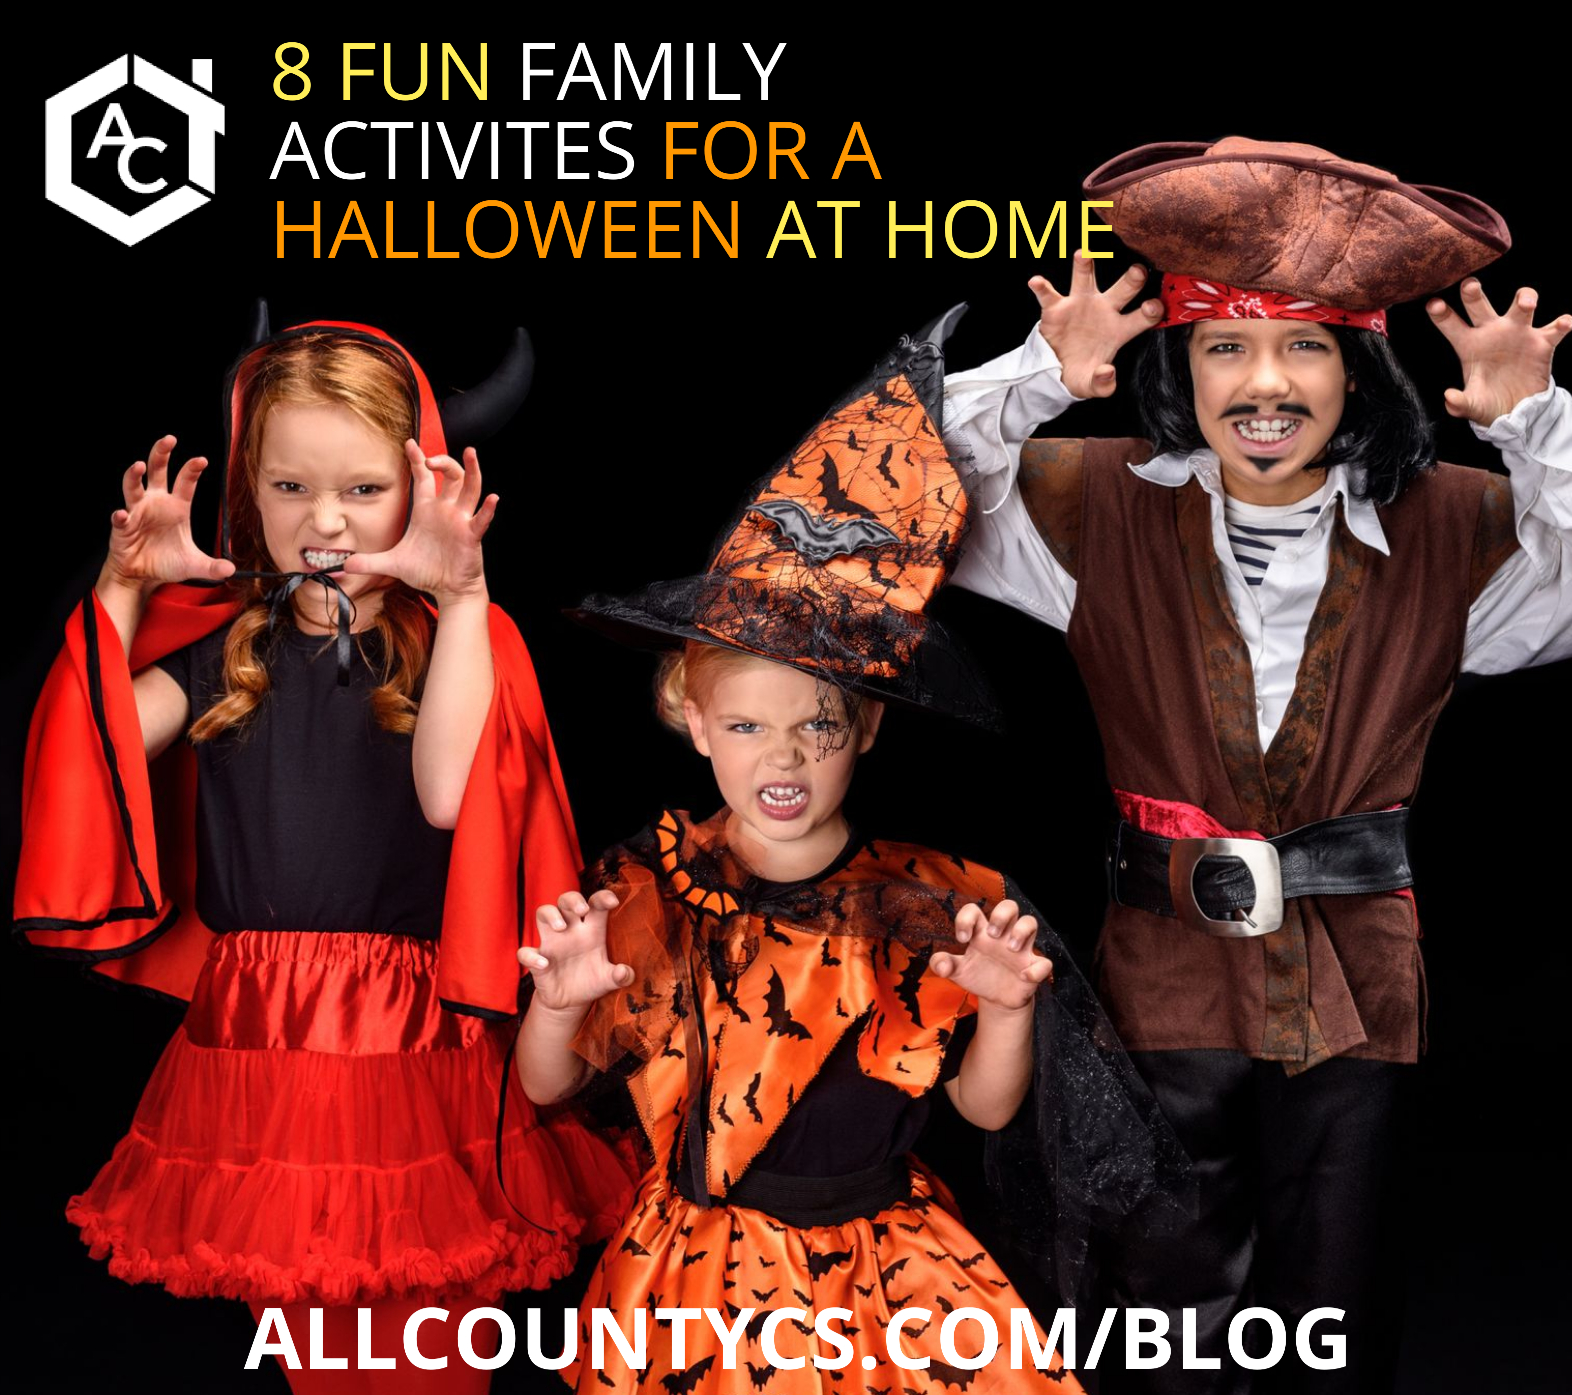 8 fun family activities for a Halloween at home